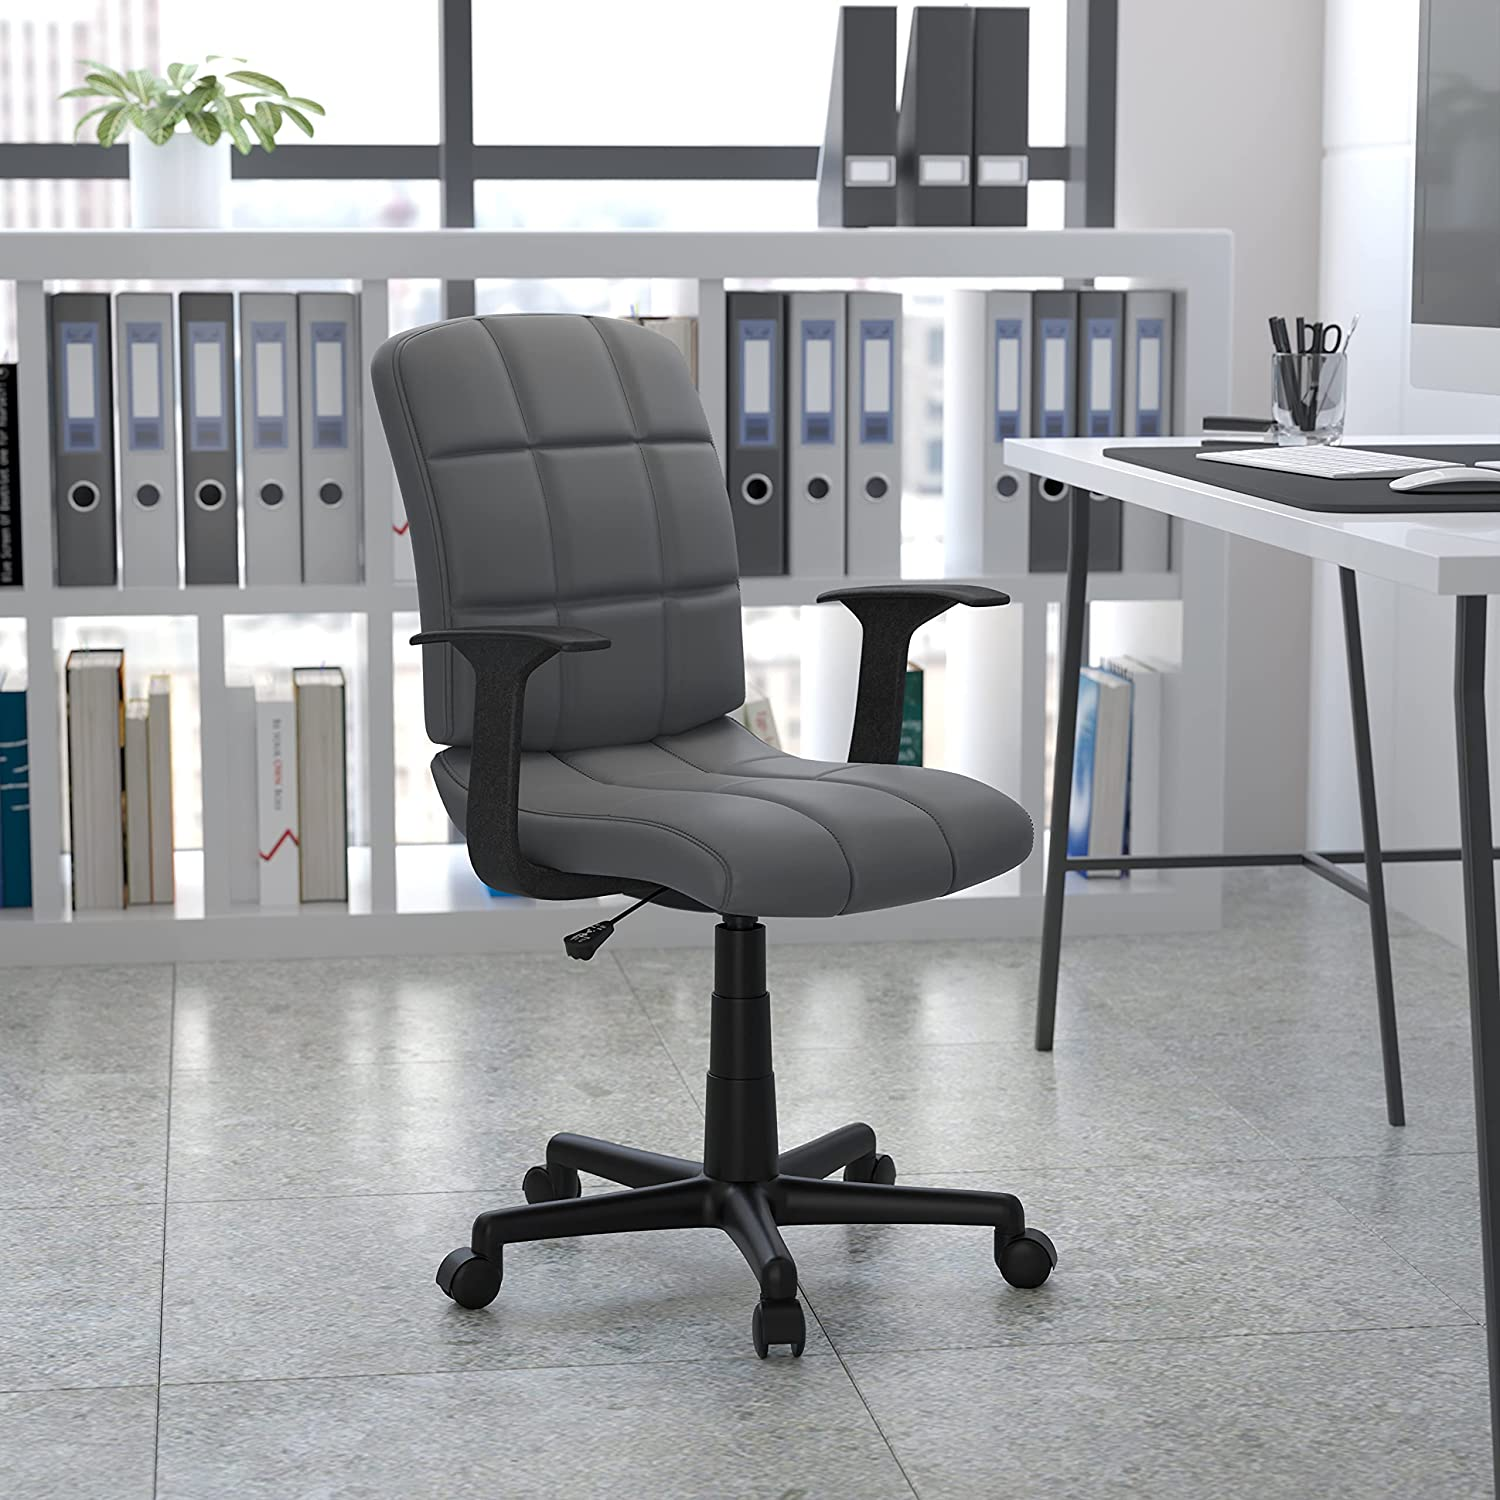 Flash Furniture Mid Back Swivel Task Gray Chair with Surprise price Arms Kansas City Mall Viny -